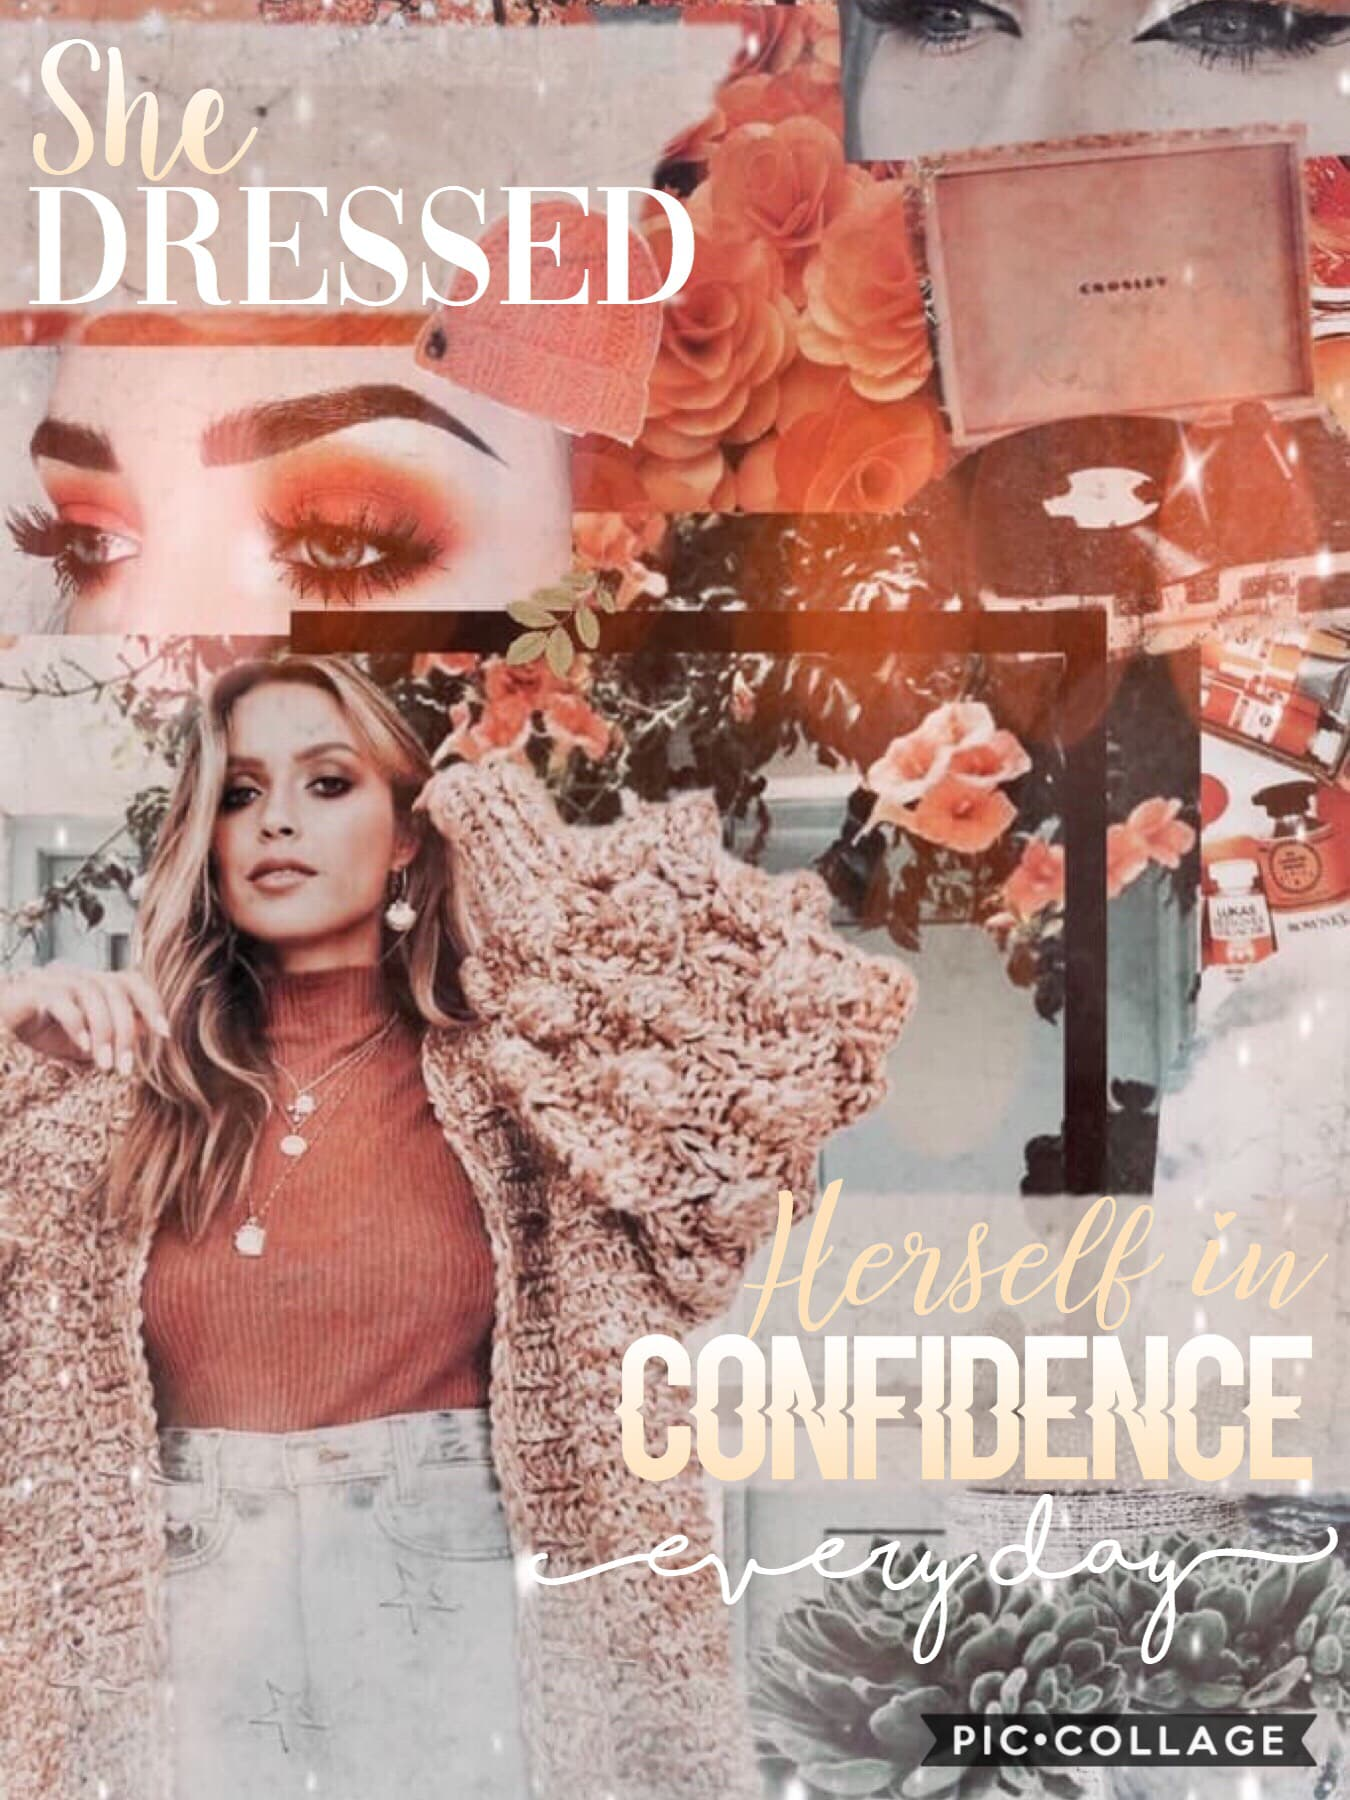 Collab with🥁 xXstardustXx she is super kind and sweet her collages are amazing go follow her!!⚡️🌻💛💕